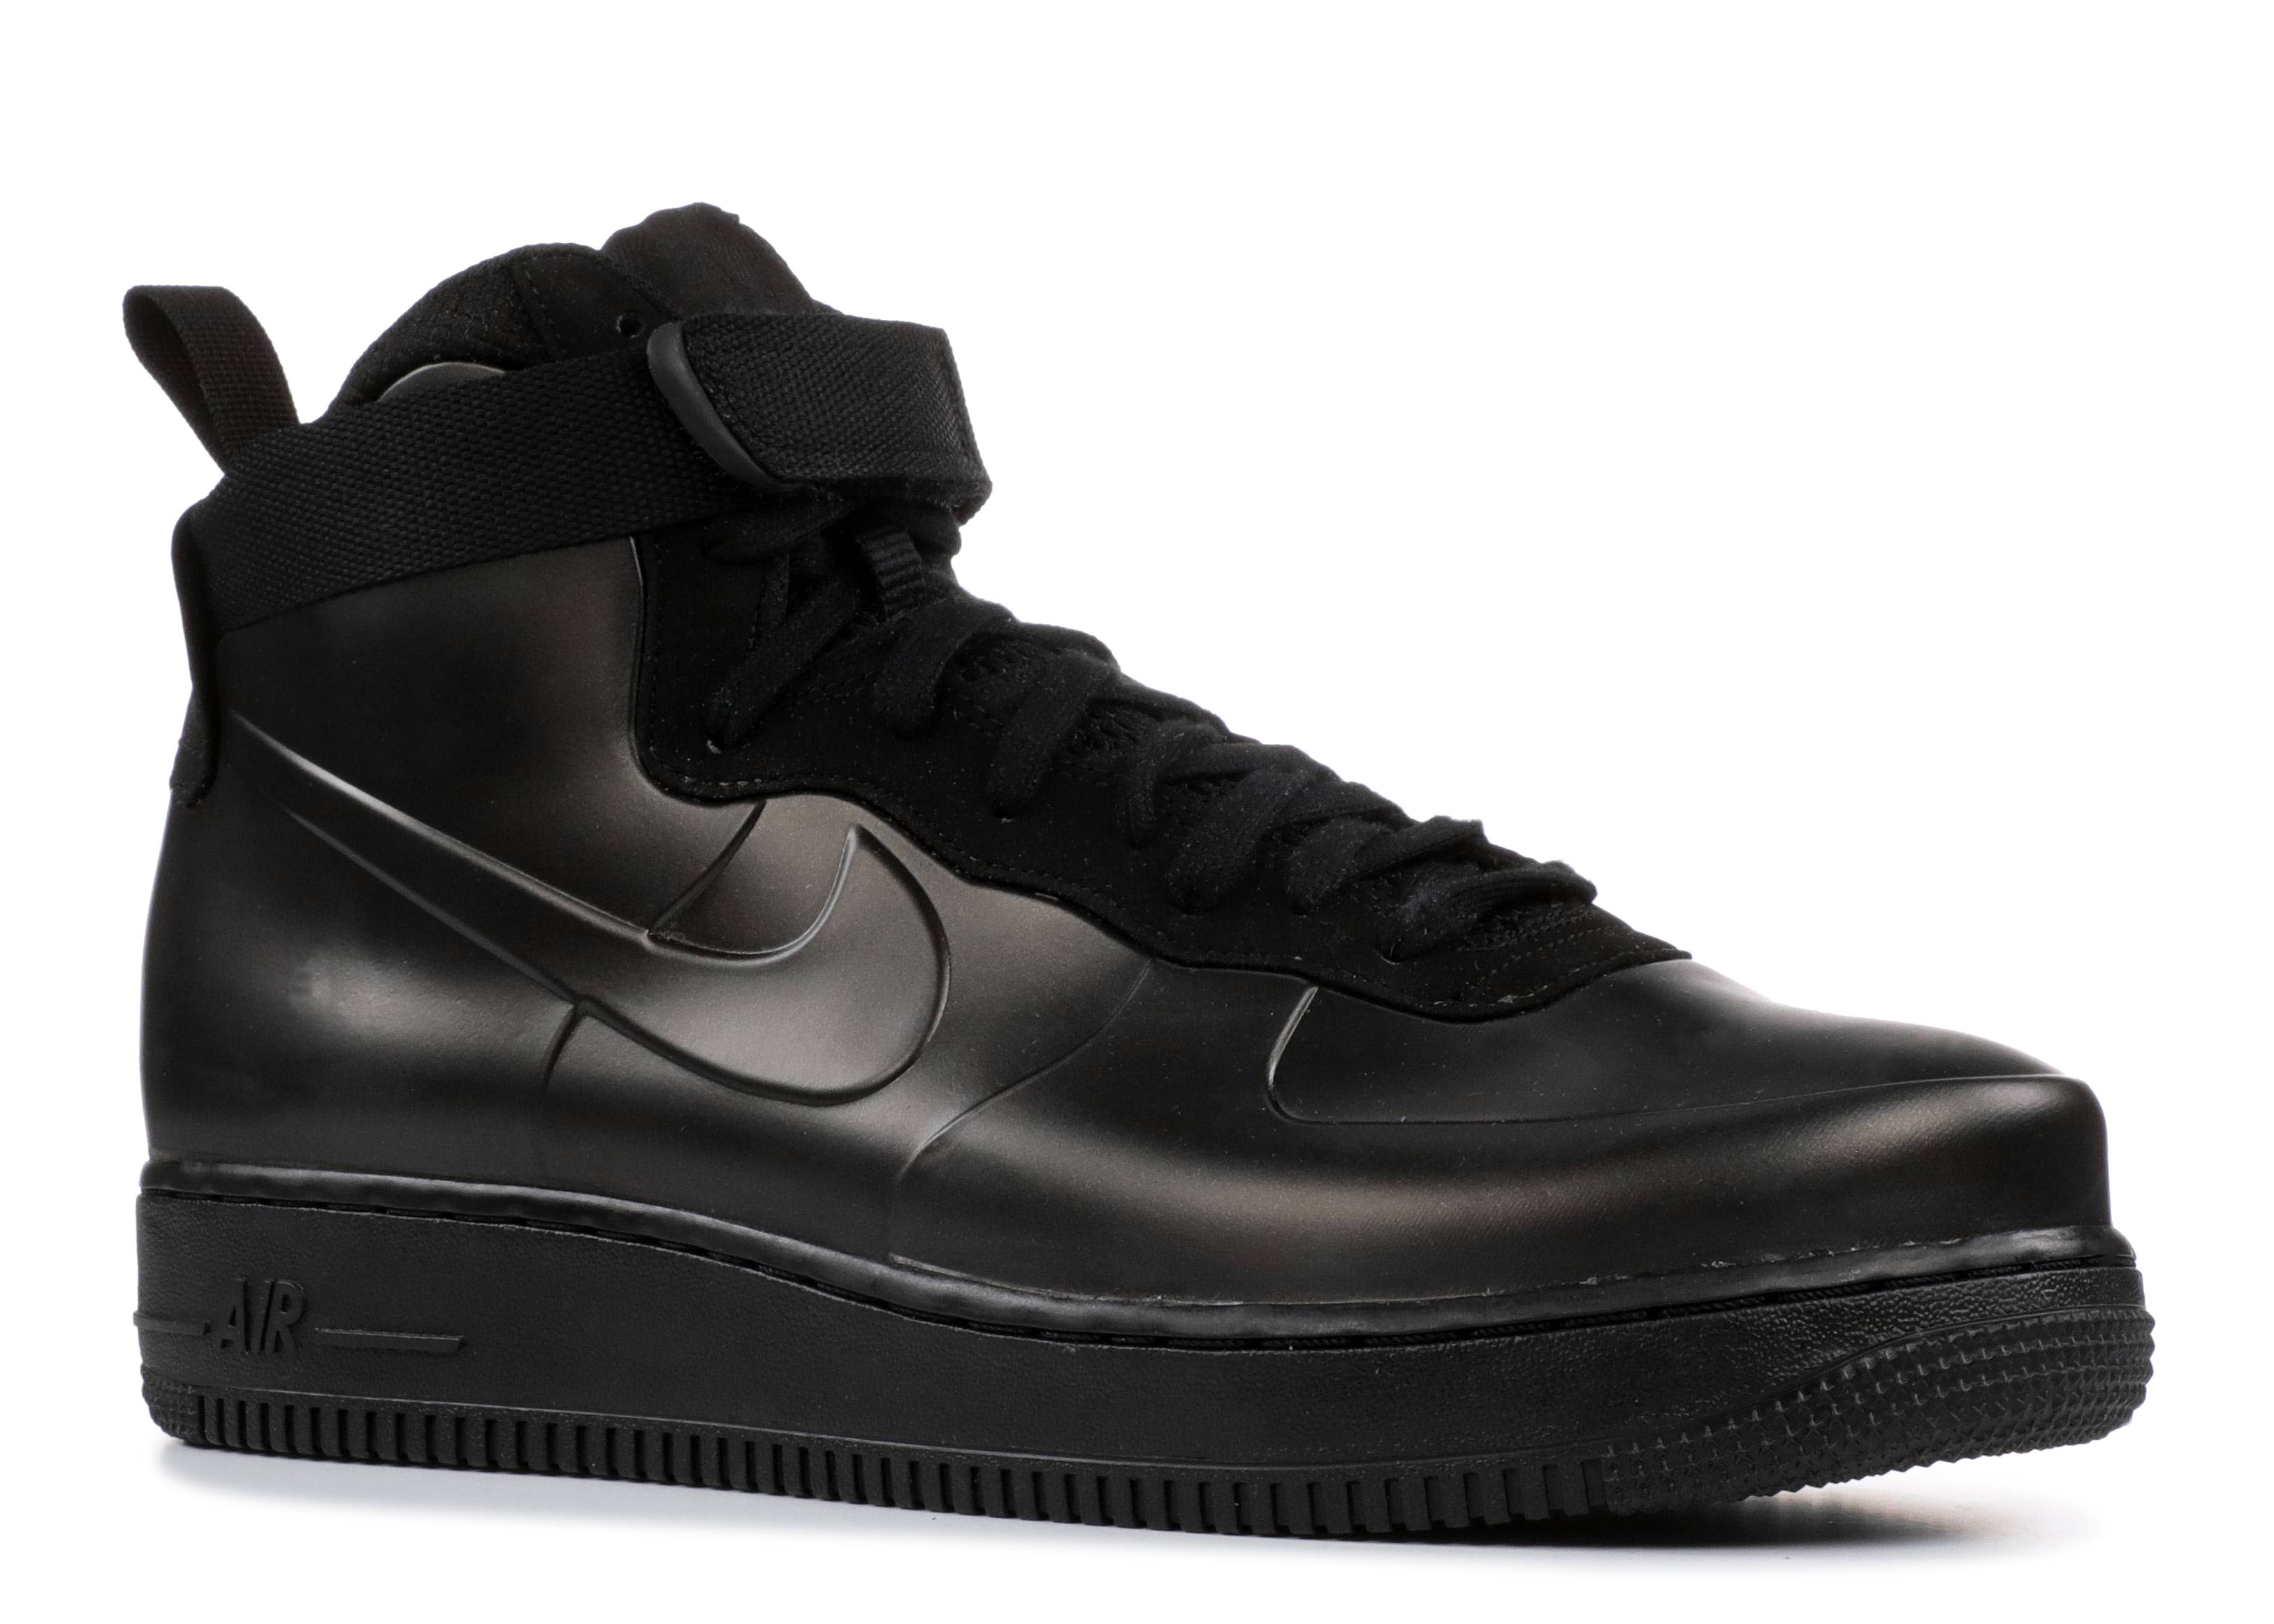 recognized brands the cheapest outlet Air Force 1 Foamposite Cup